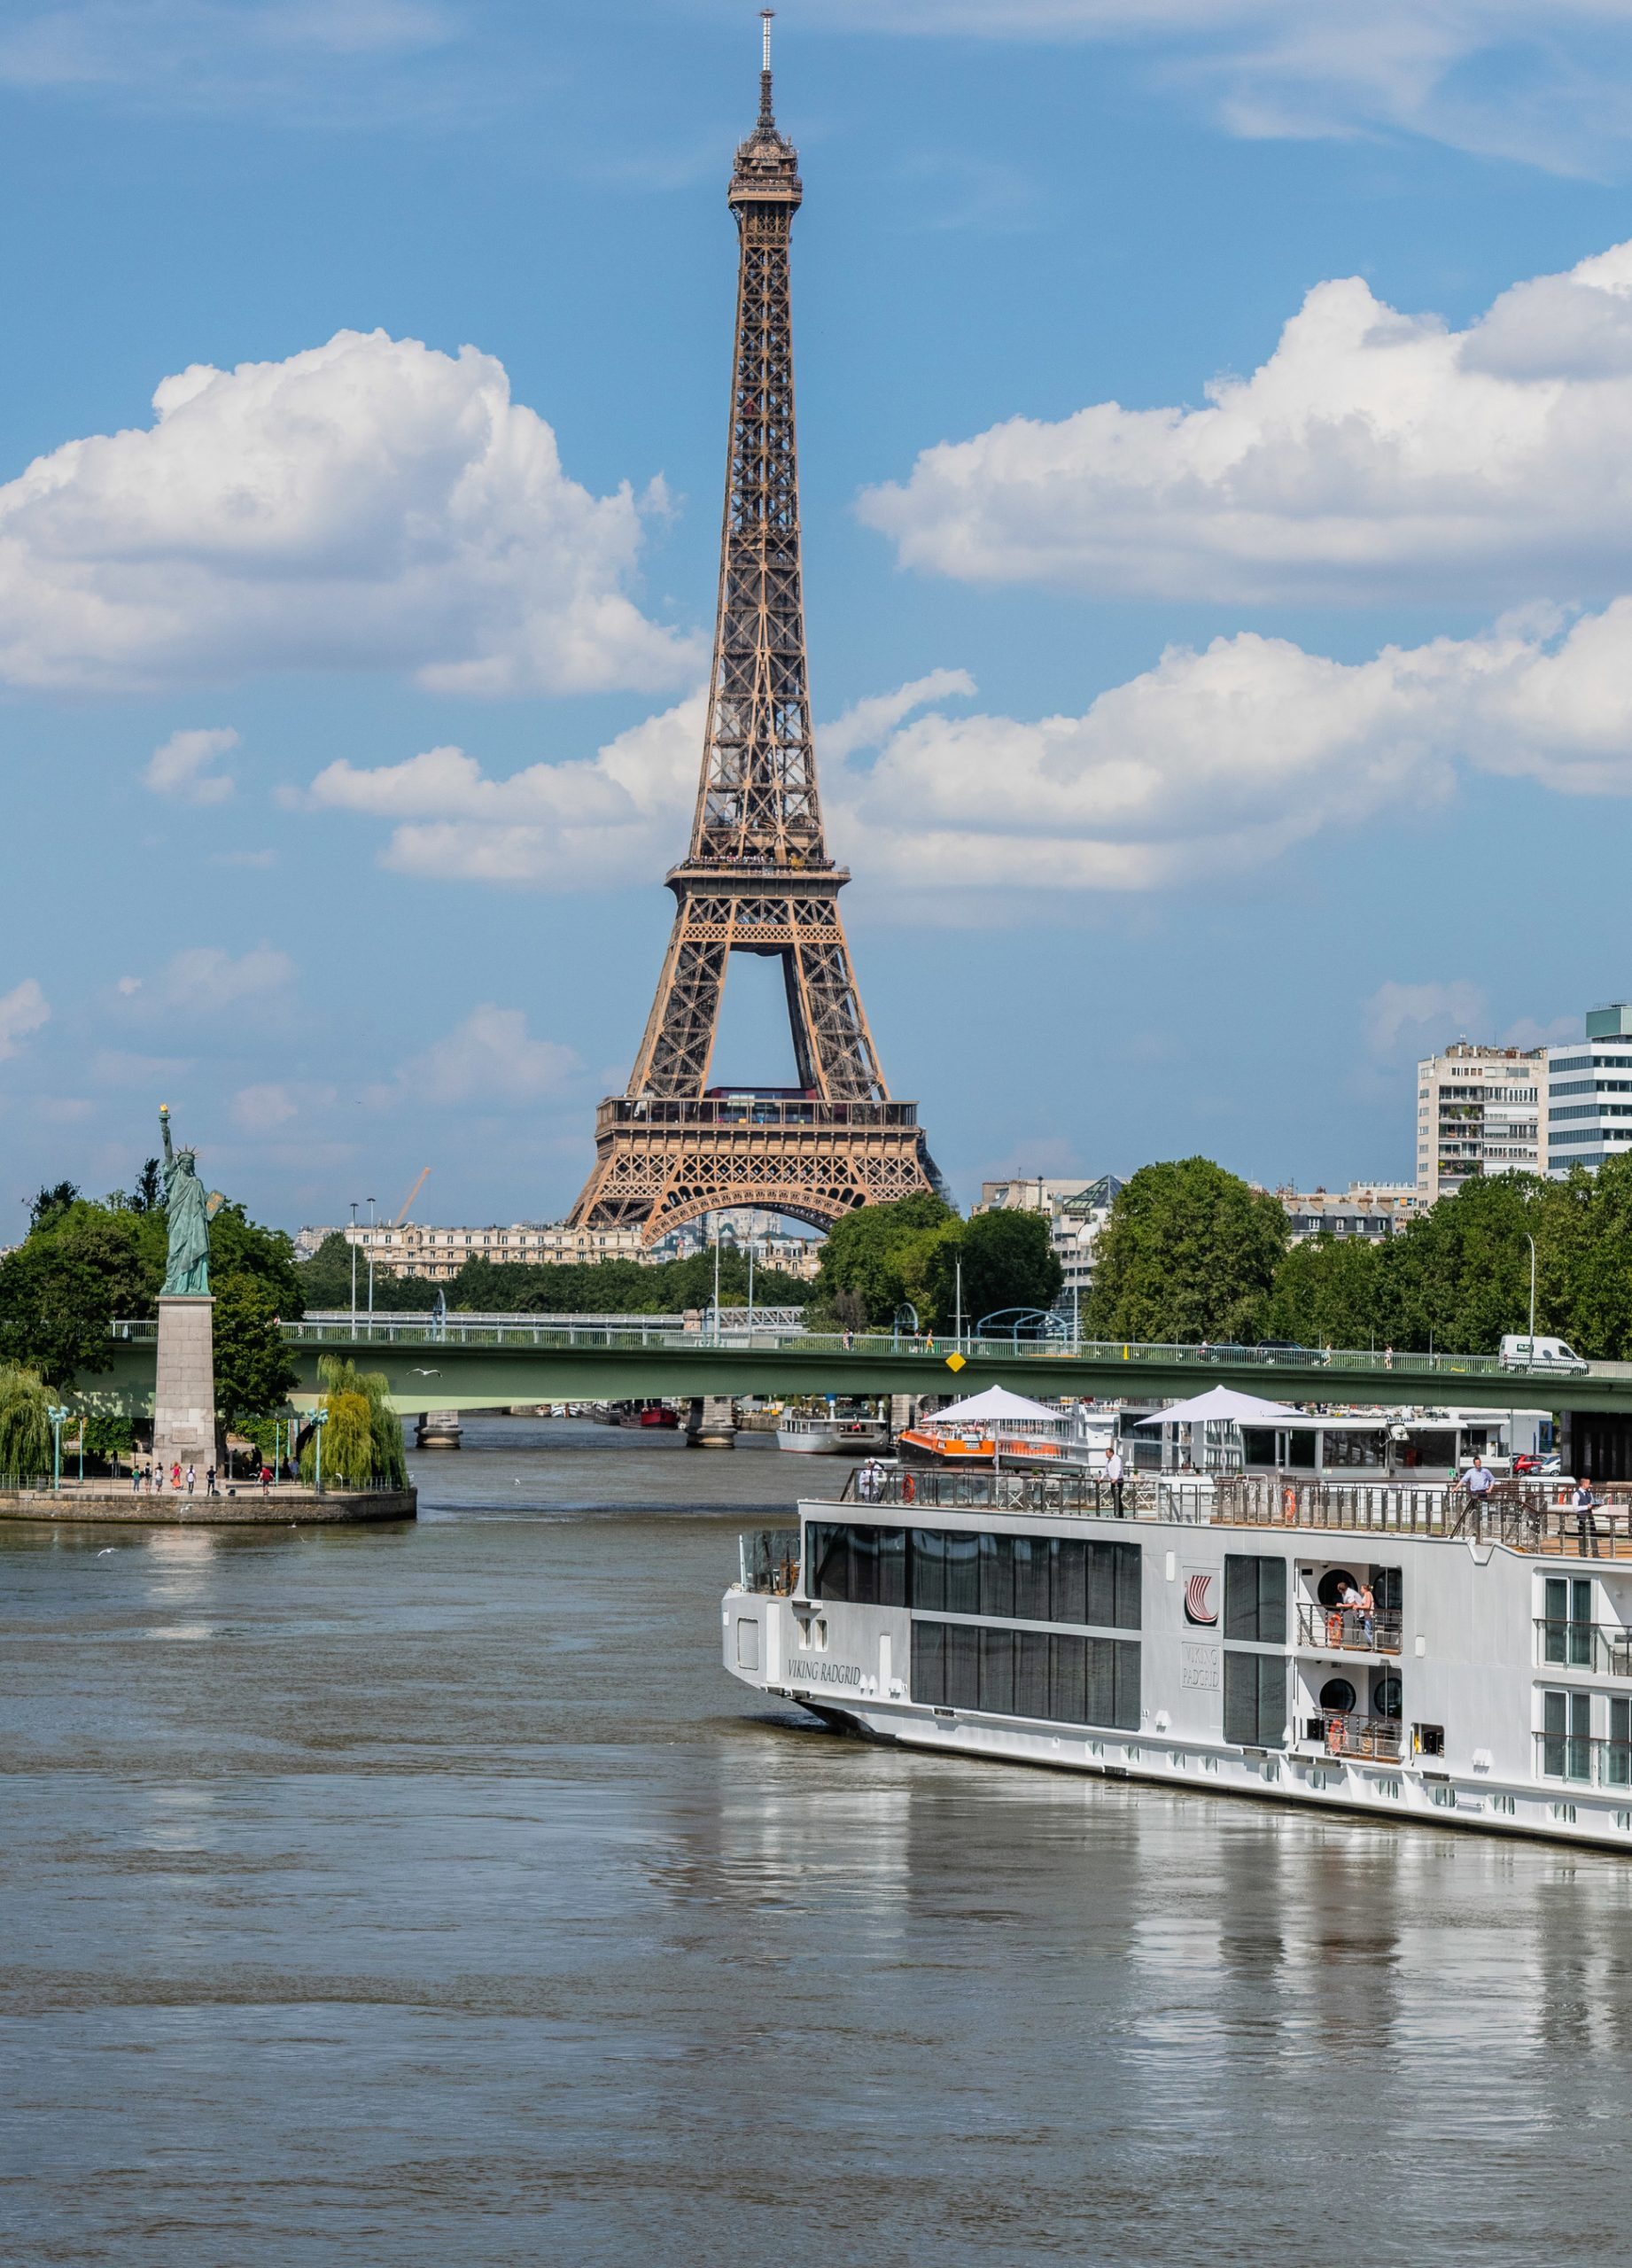 Viking has launched four new Viking Longships that are purpose-built specifically to navigate the Seine River. Hosting 168 guests in 84 staterooms, Viking Kari, Viking Radgrid, Viking Skaga and Viking Fjorgyn dock at Viking's exclusive docking location in the center of Paris, just a short walking distance from the Eiffel Tower.